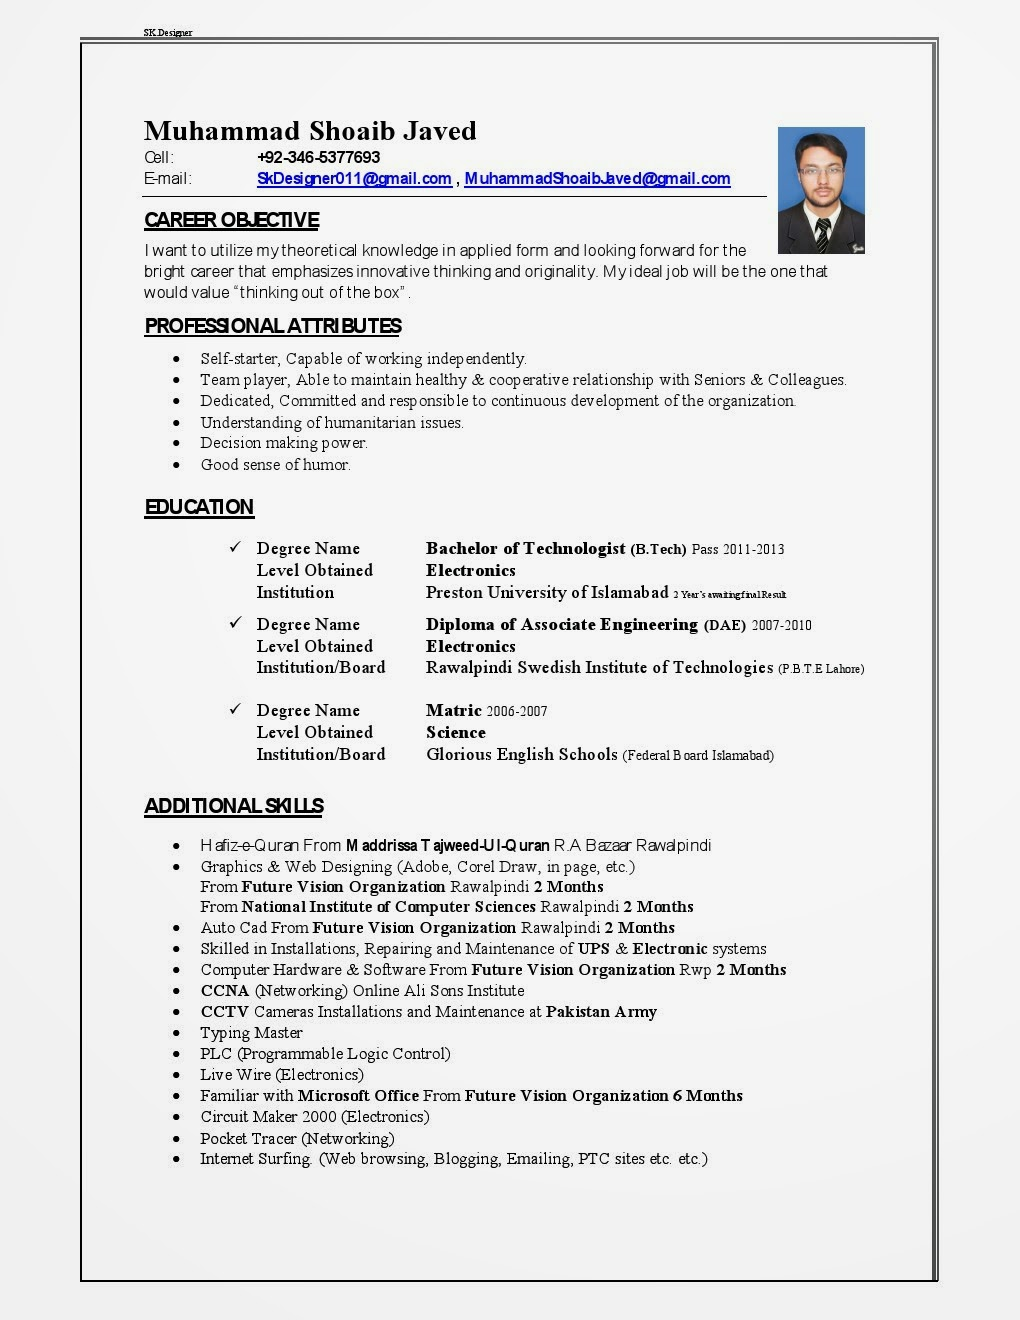 Professional resume writing services dubai